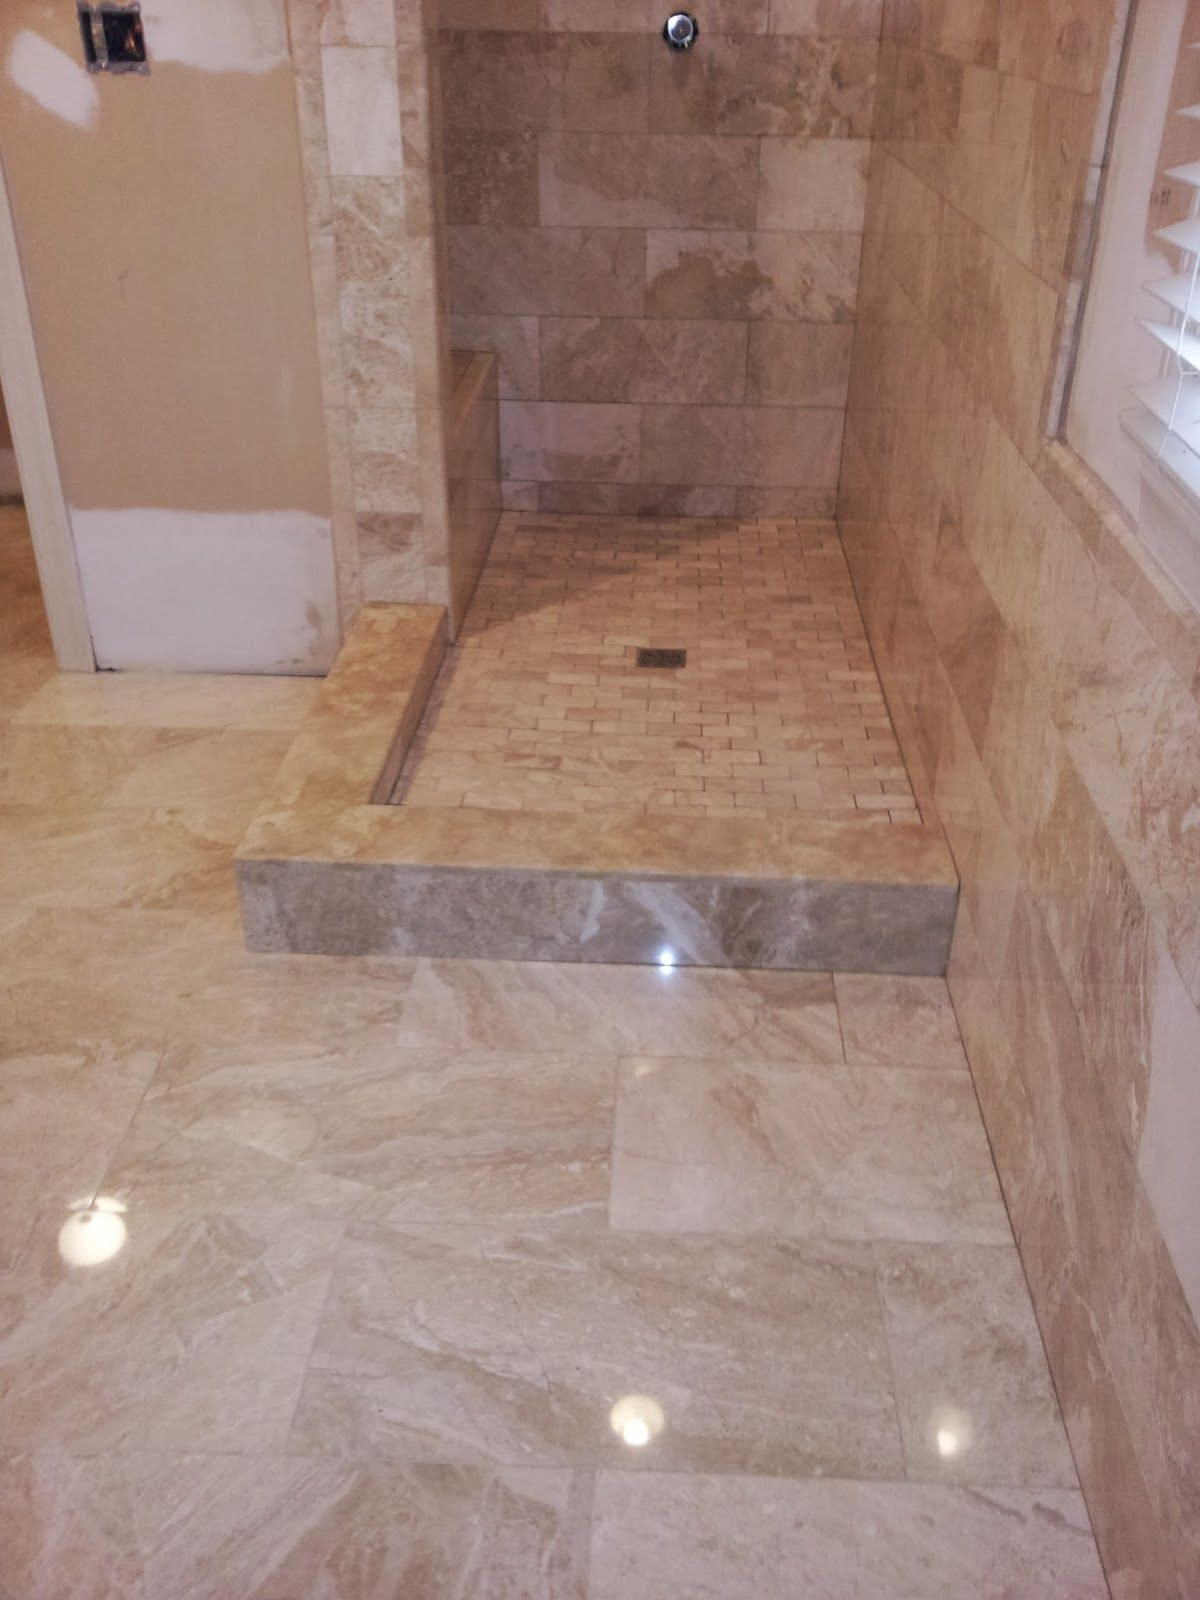 Beautiful Installing Ceramic Tile With Classy Zocalo Marmol Kali Tile Floor  And Wall For Luxury Shower Space Bathroom Ceramic Tile Installat. Part 65